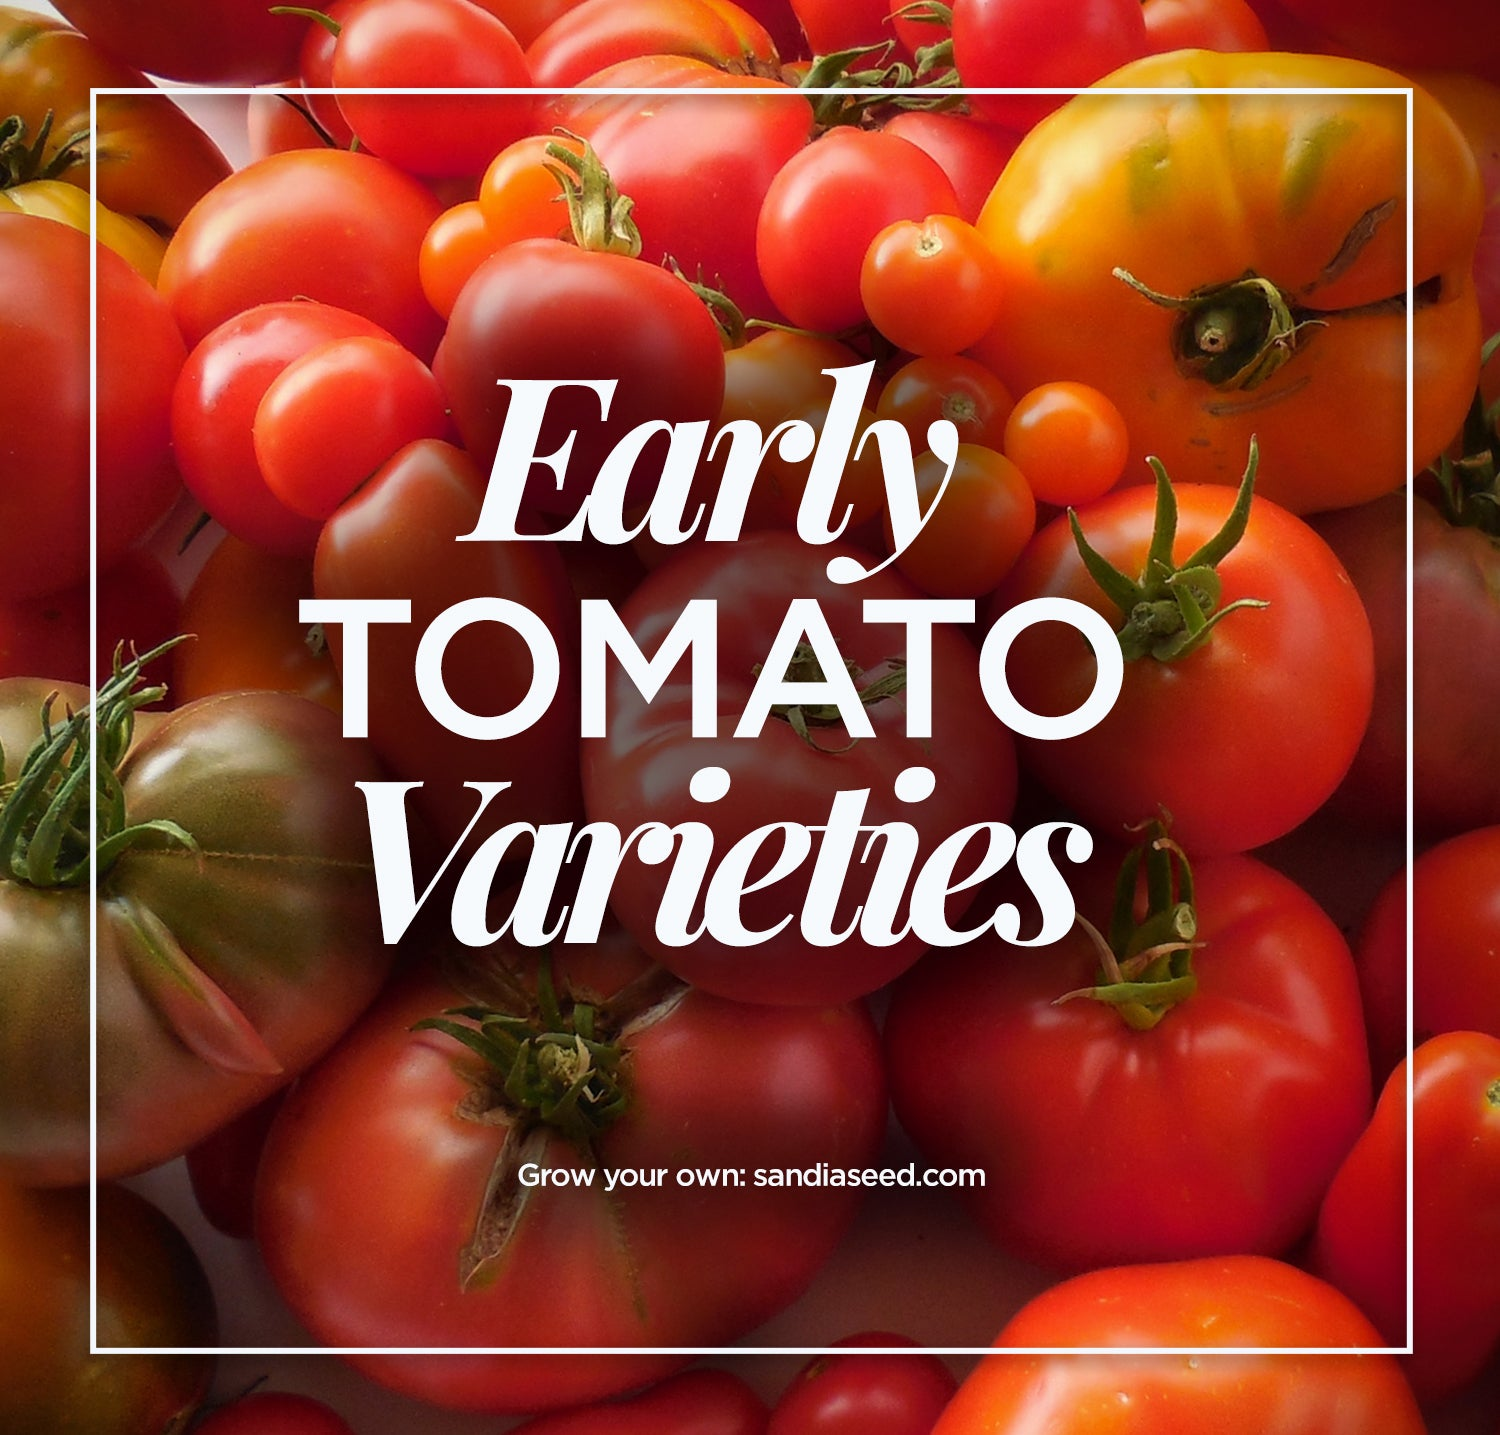 Early Tomato Varieties from SandiaSeed.com